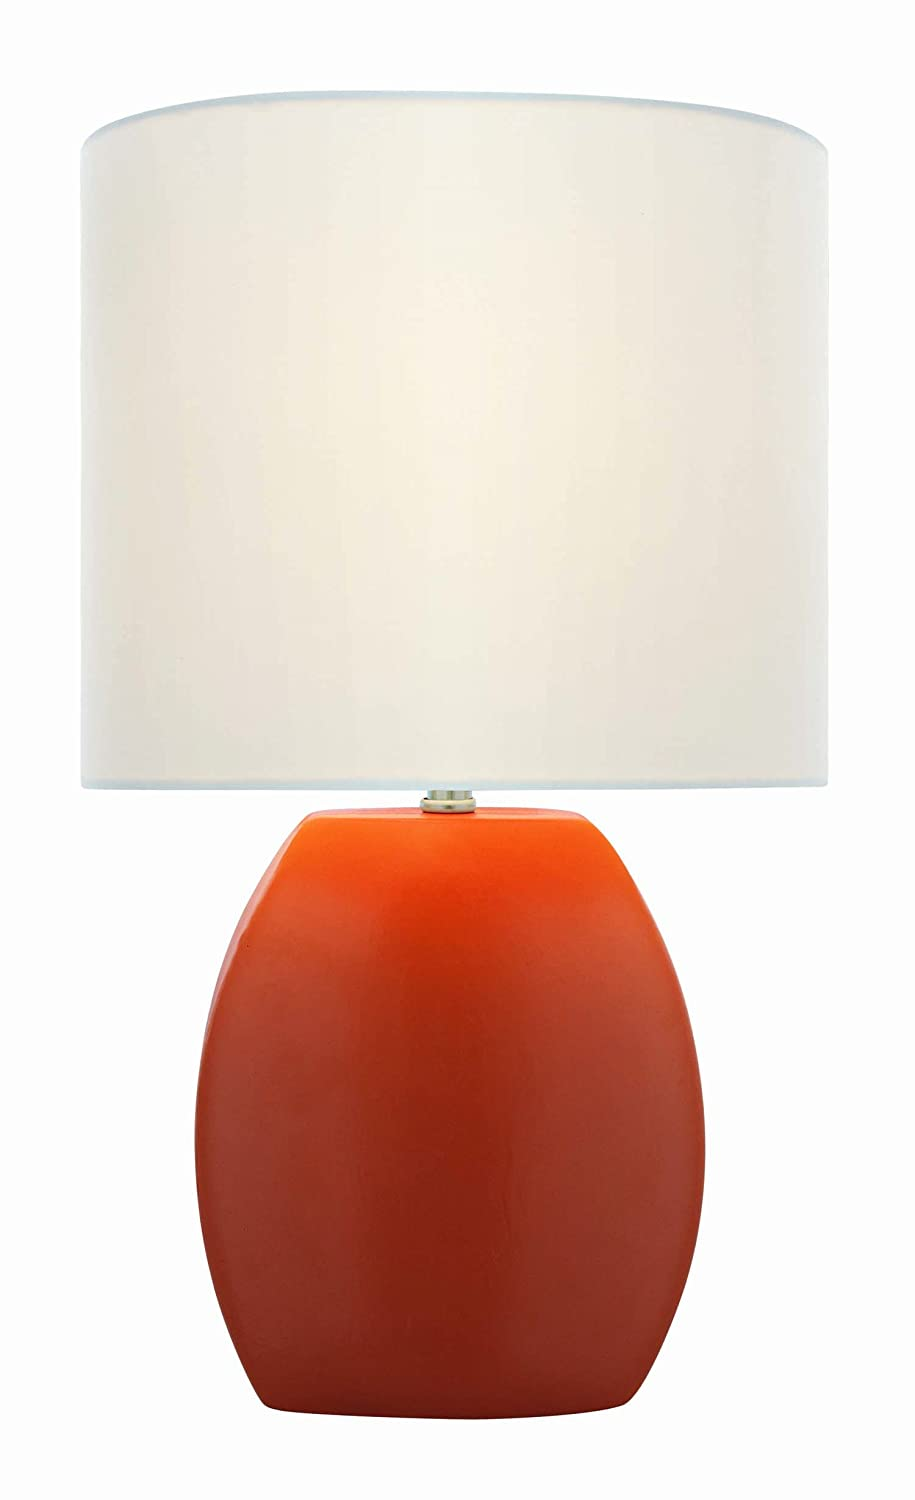 orange glass pretty lamp look table of design lamps color image